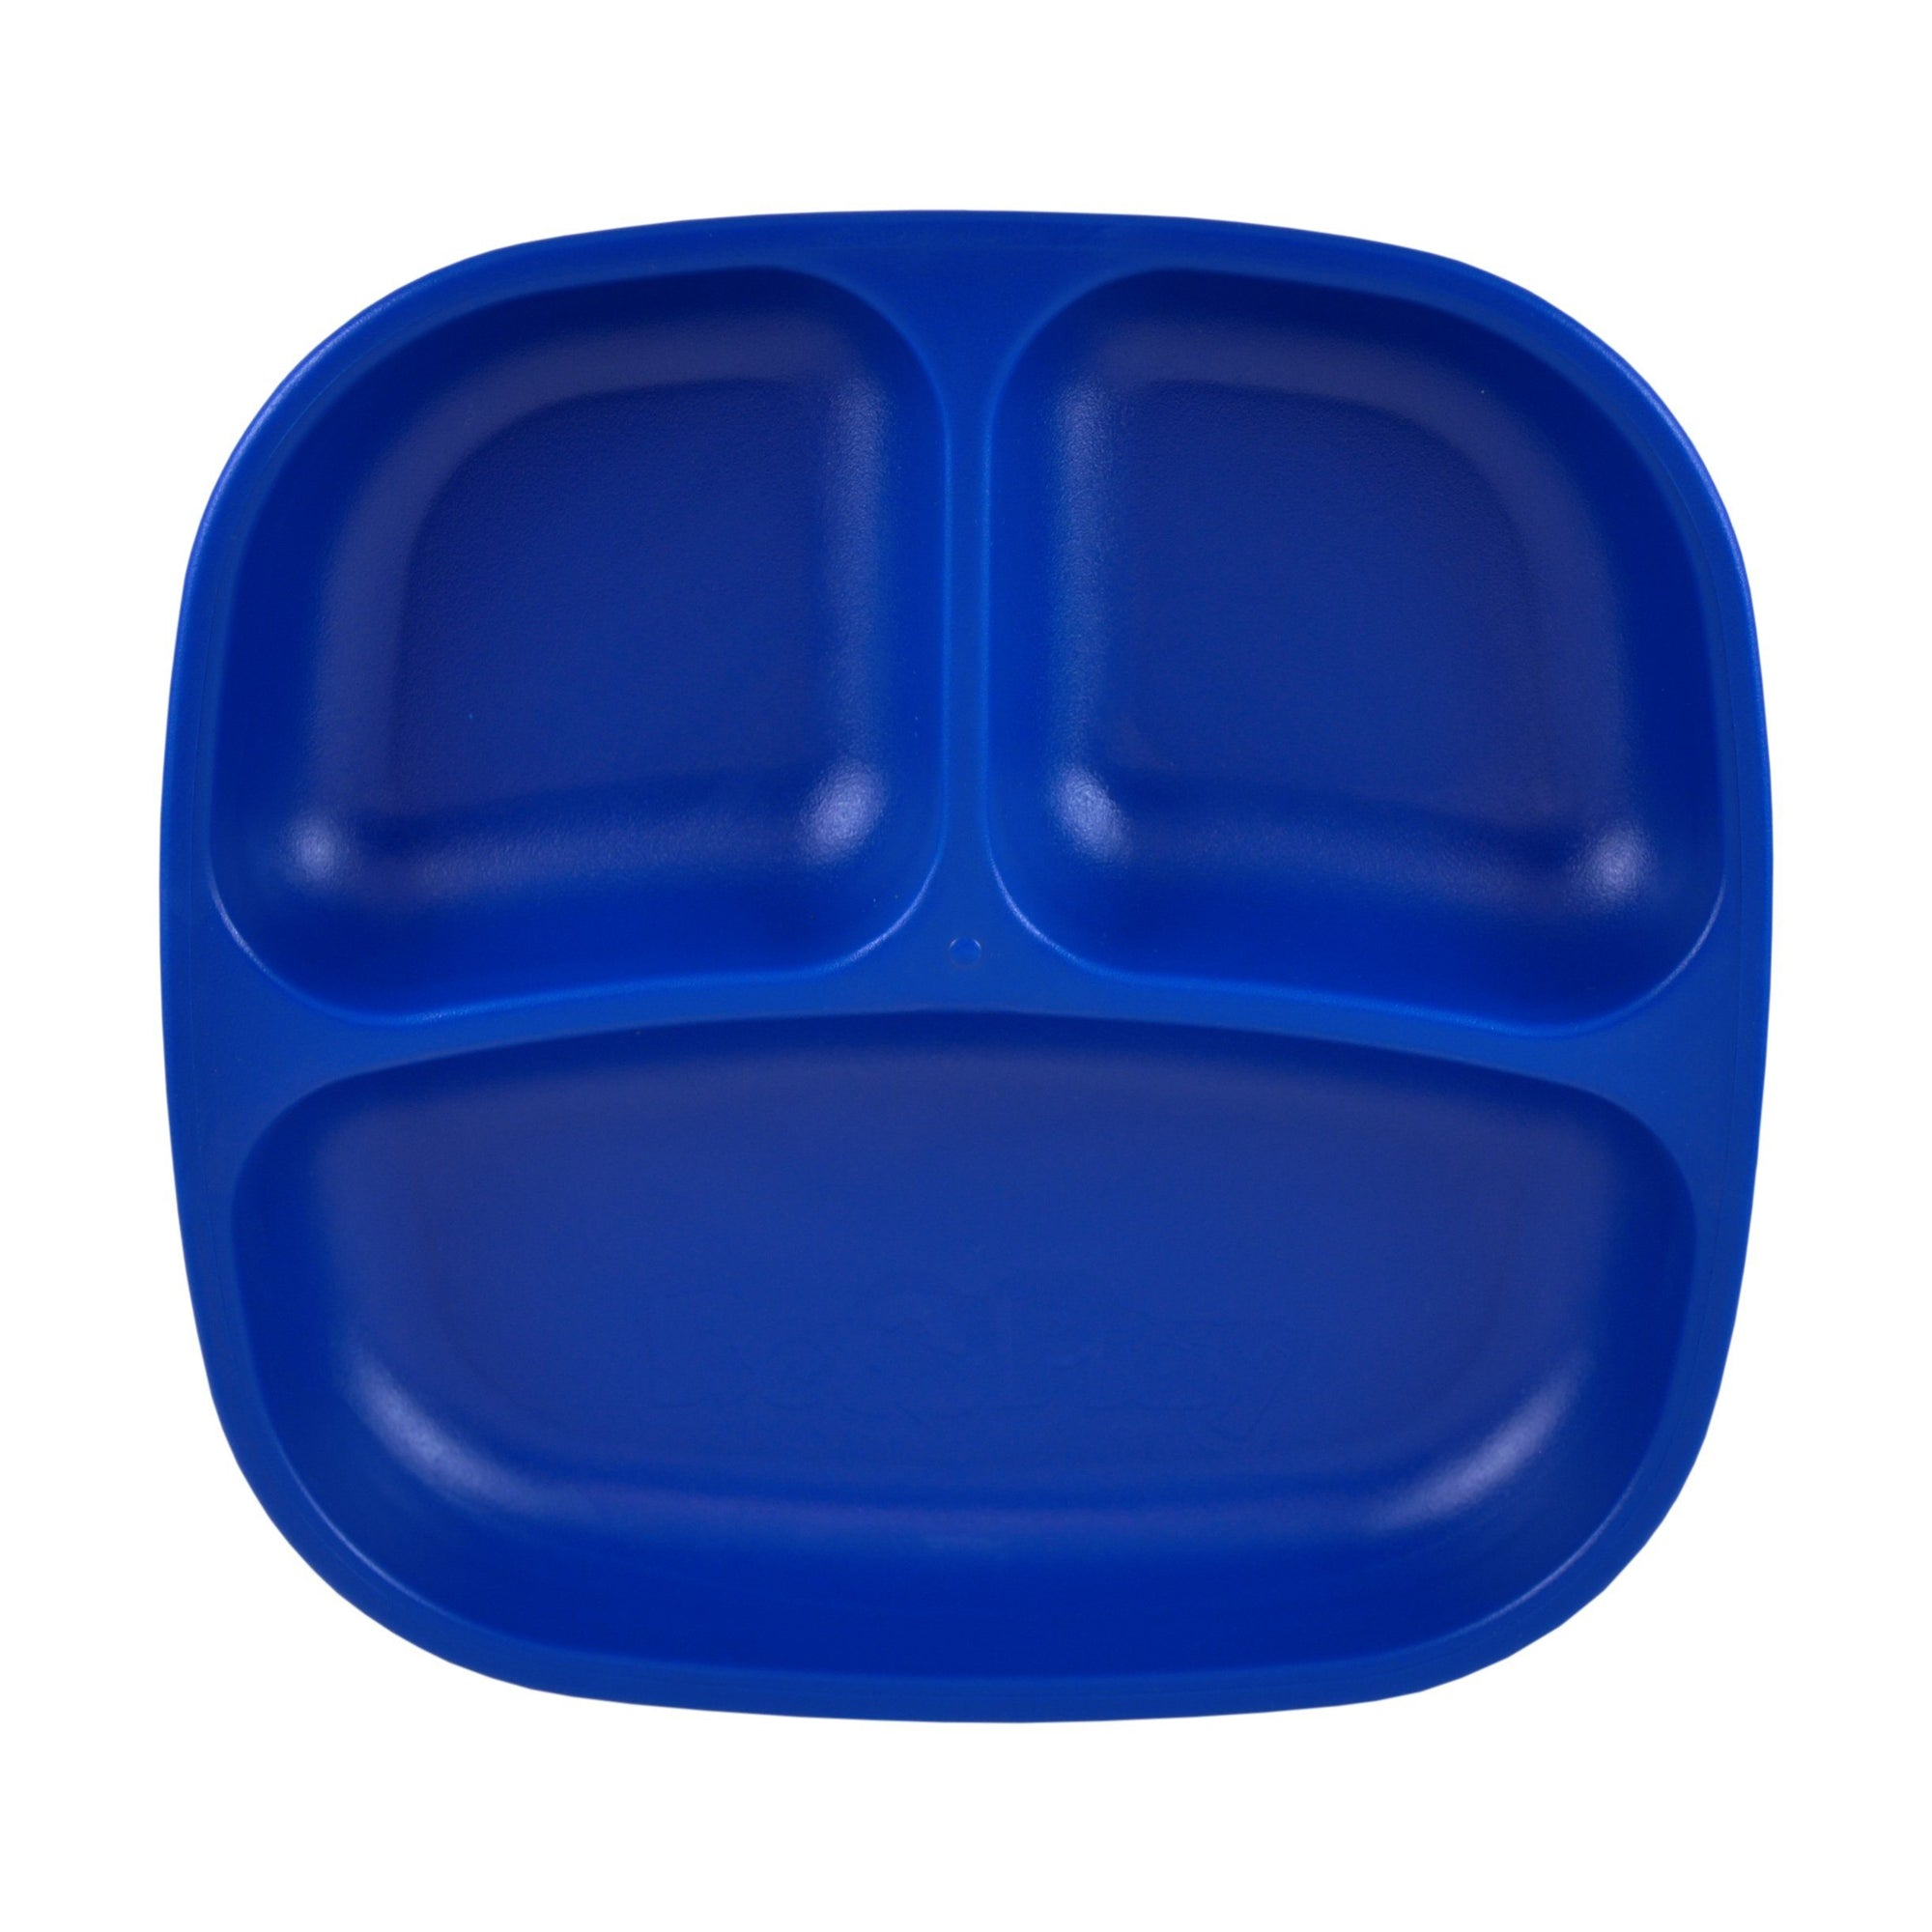 Divided Plate (Navy Blue)